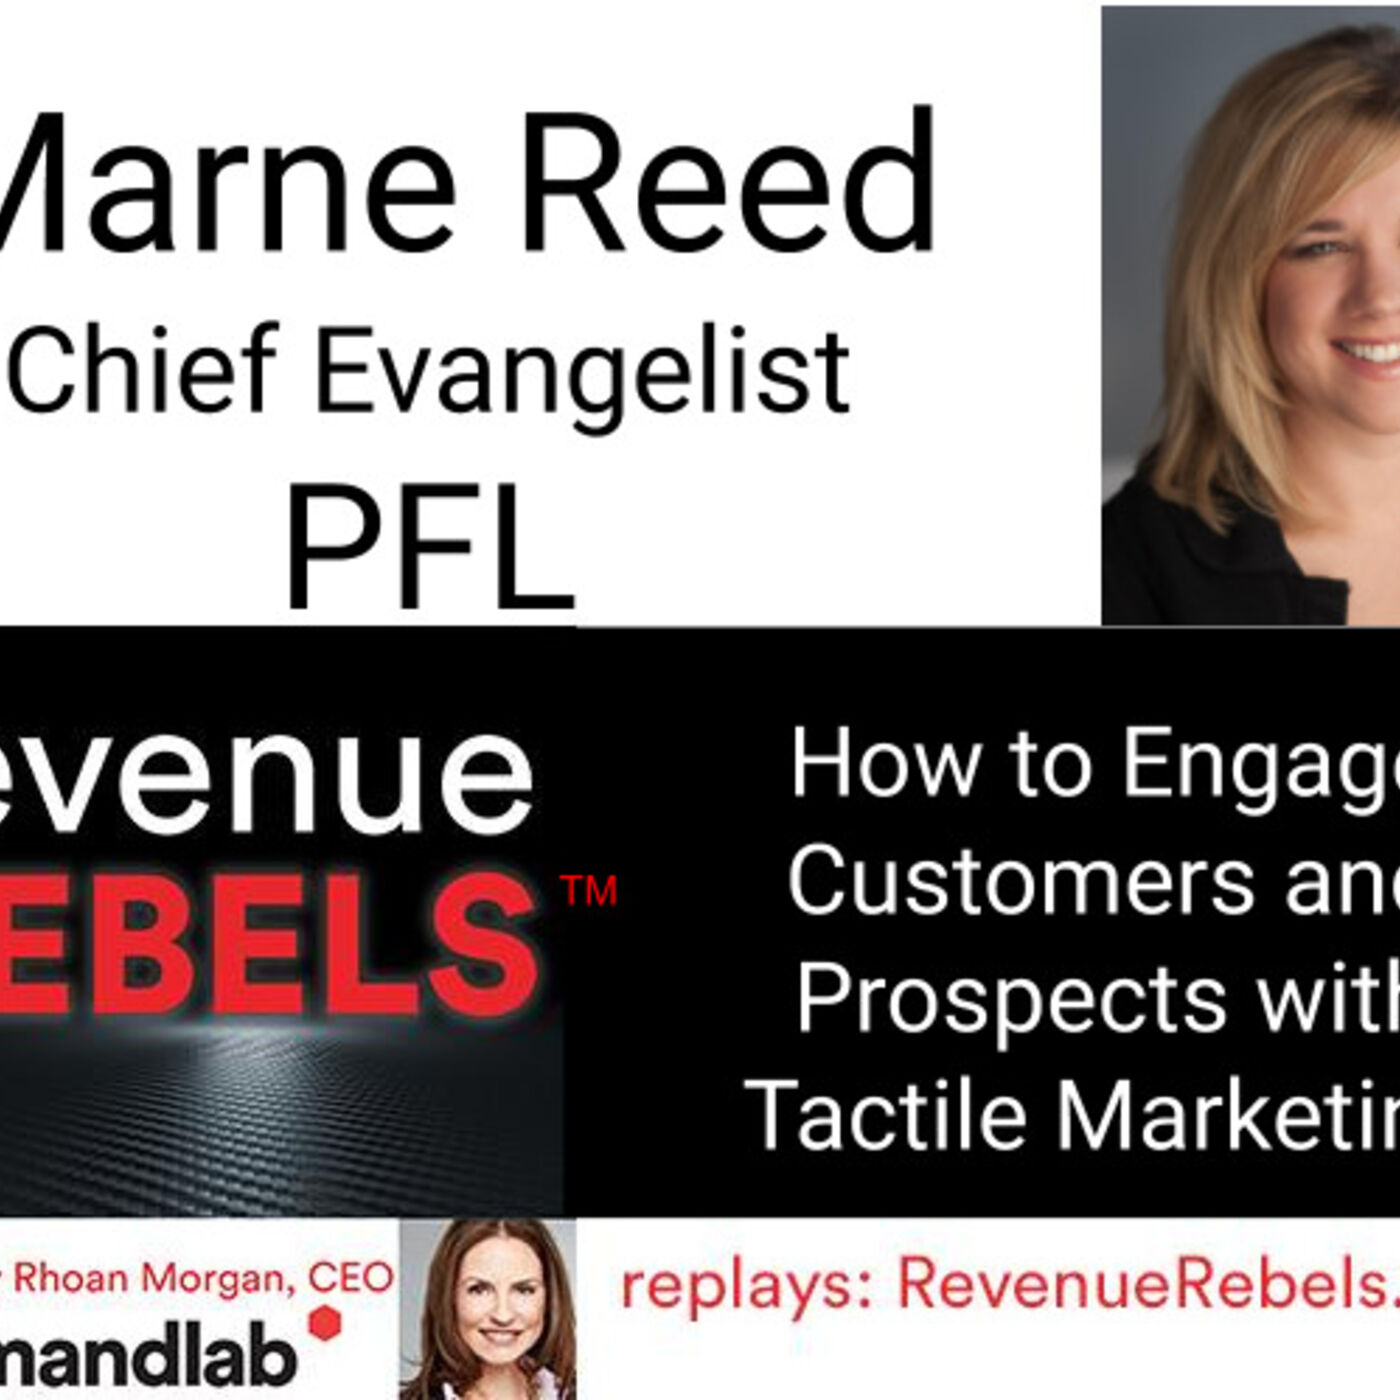 How to Engage Customers and Prospects with Tactile Marketing